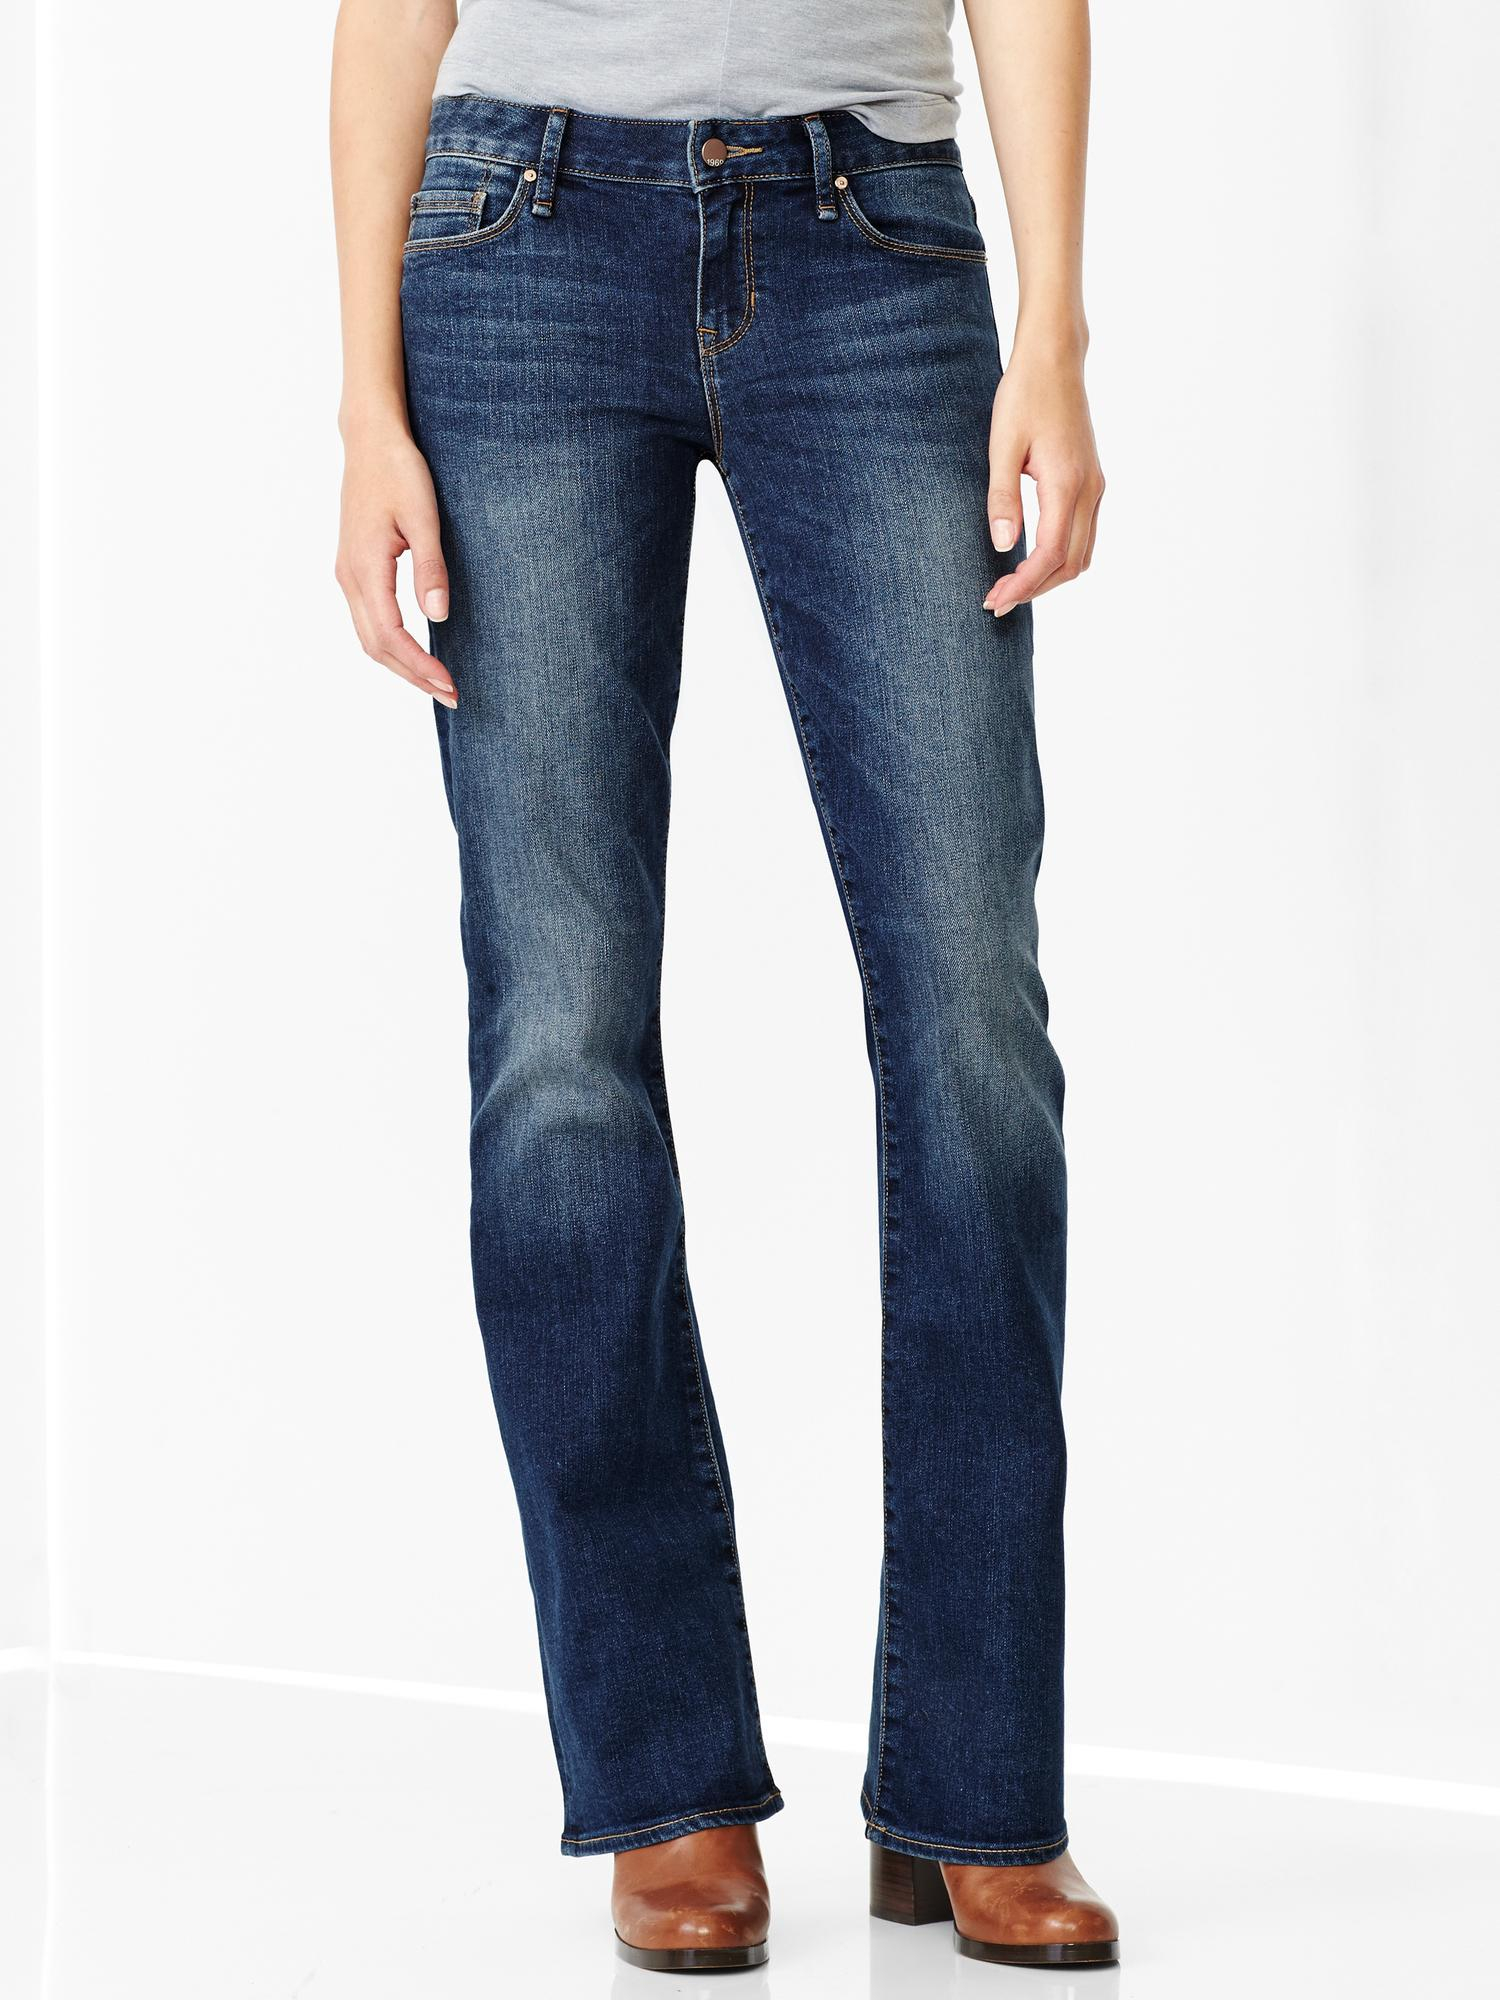 Gap Authentic 1969 Perfect Boot Jeans in Blue (medium wash) - Save 50% | Lyst